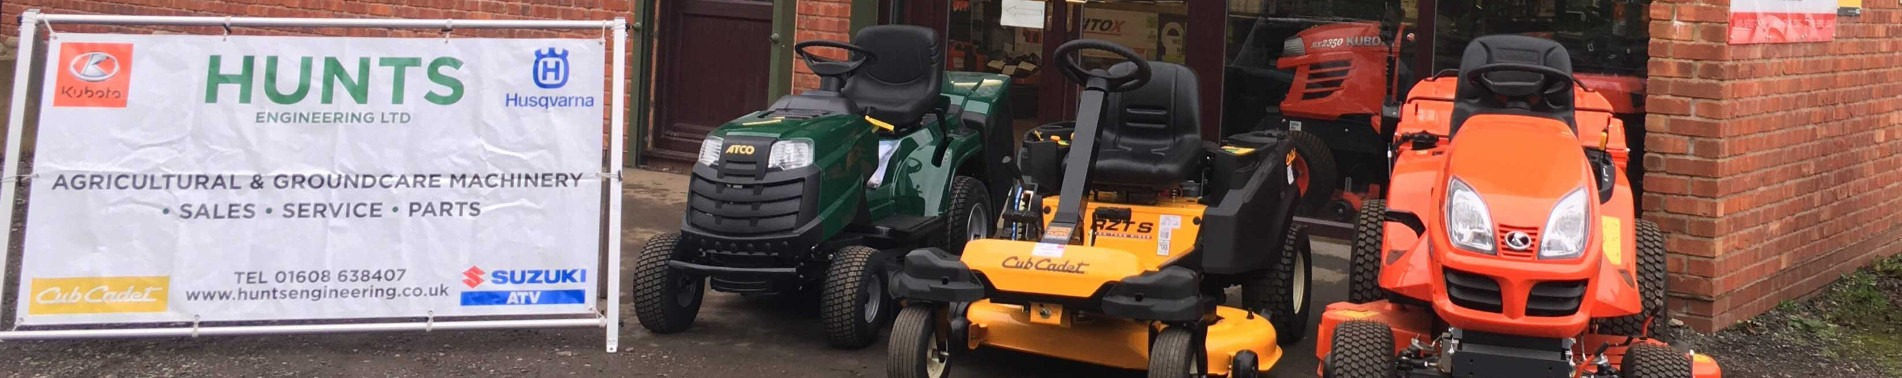 Hunts Engineering Advertising Board and Ride-on Mowers